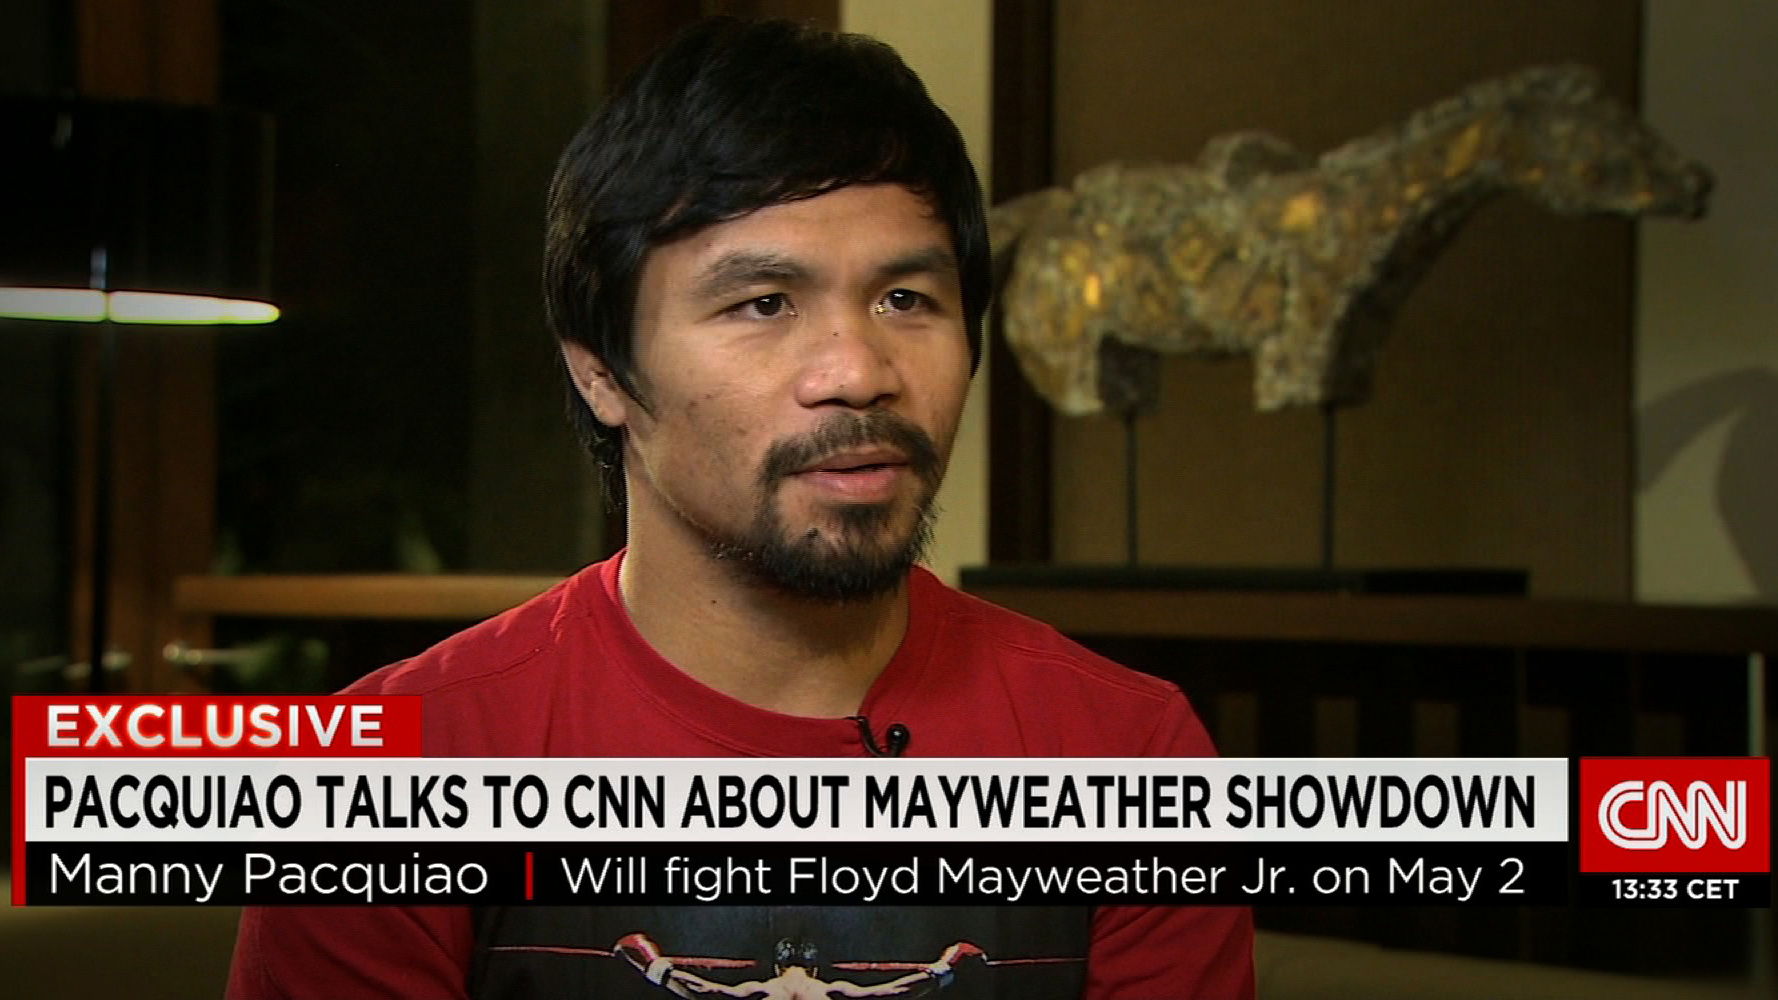 CNN Exclusive: Manny Pacquiao on Floyd Mayweather Jr. showdown